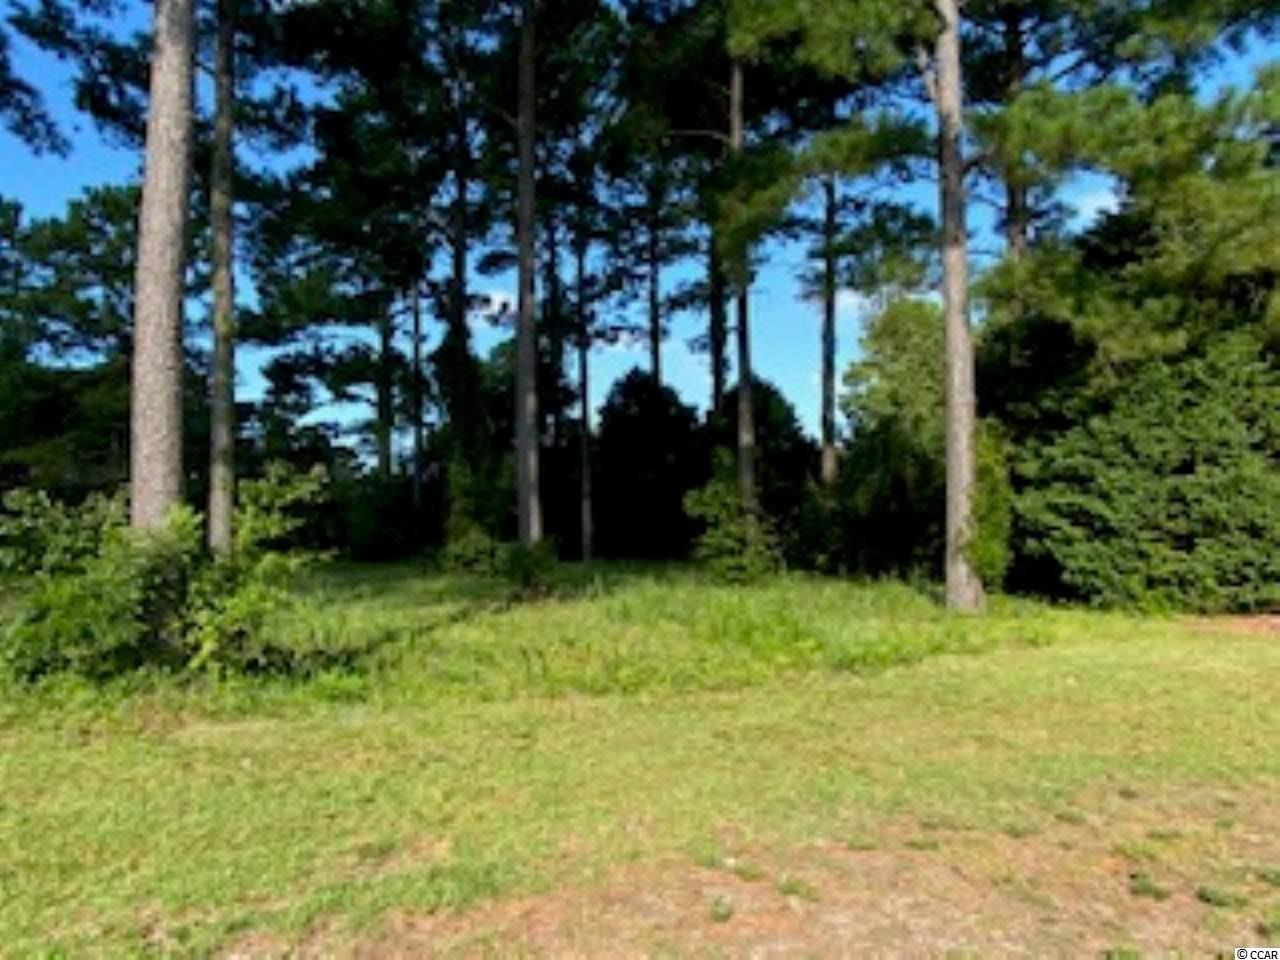 """Beautiful """"Over the Bridge"""" corner lot situated close to the entrance/exit in Grande Dunes. The back of the lot overlooks a beautiful manicured pond and the Resort Golf Course. Lot is situated on a corner with lots of common ground landscaping at the side and back of the lot, which makes this lot very special and private. The front view is gorgeous as it has unique common area landscaping on the half-moon Sedona Circle. This lot is located in South Carolina's premier coastal community in Myrtle Beach; Grand Dunes. Owners at Grand Dunes enjoy a 25,000 square foot Ocean Club that boasts exquisite dining, oceanfront pools with food and beverage service, along with meeting rooms and fun activities.  There are two 18-hole golf courses along with several on-sight restaurants, deep water marina, Har-tru tennis facility, and miles of biking/walking. This is one of the few choice lots left, over the bridge."""